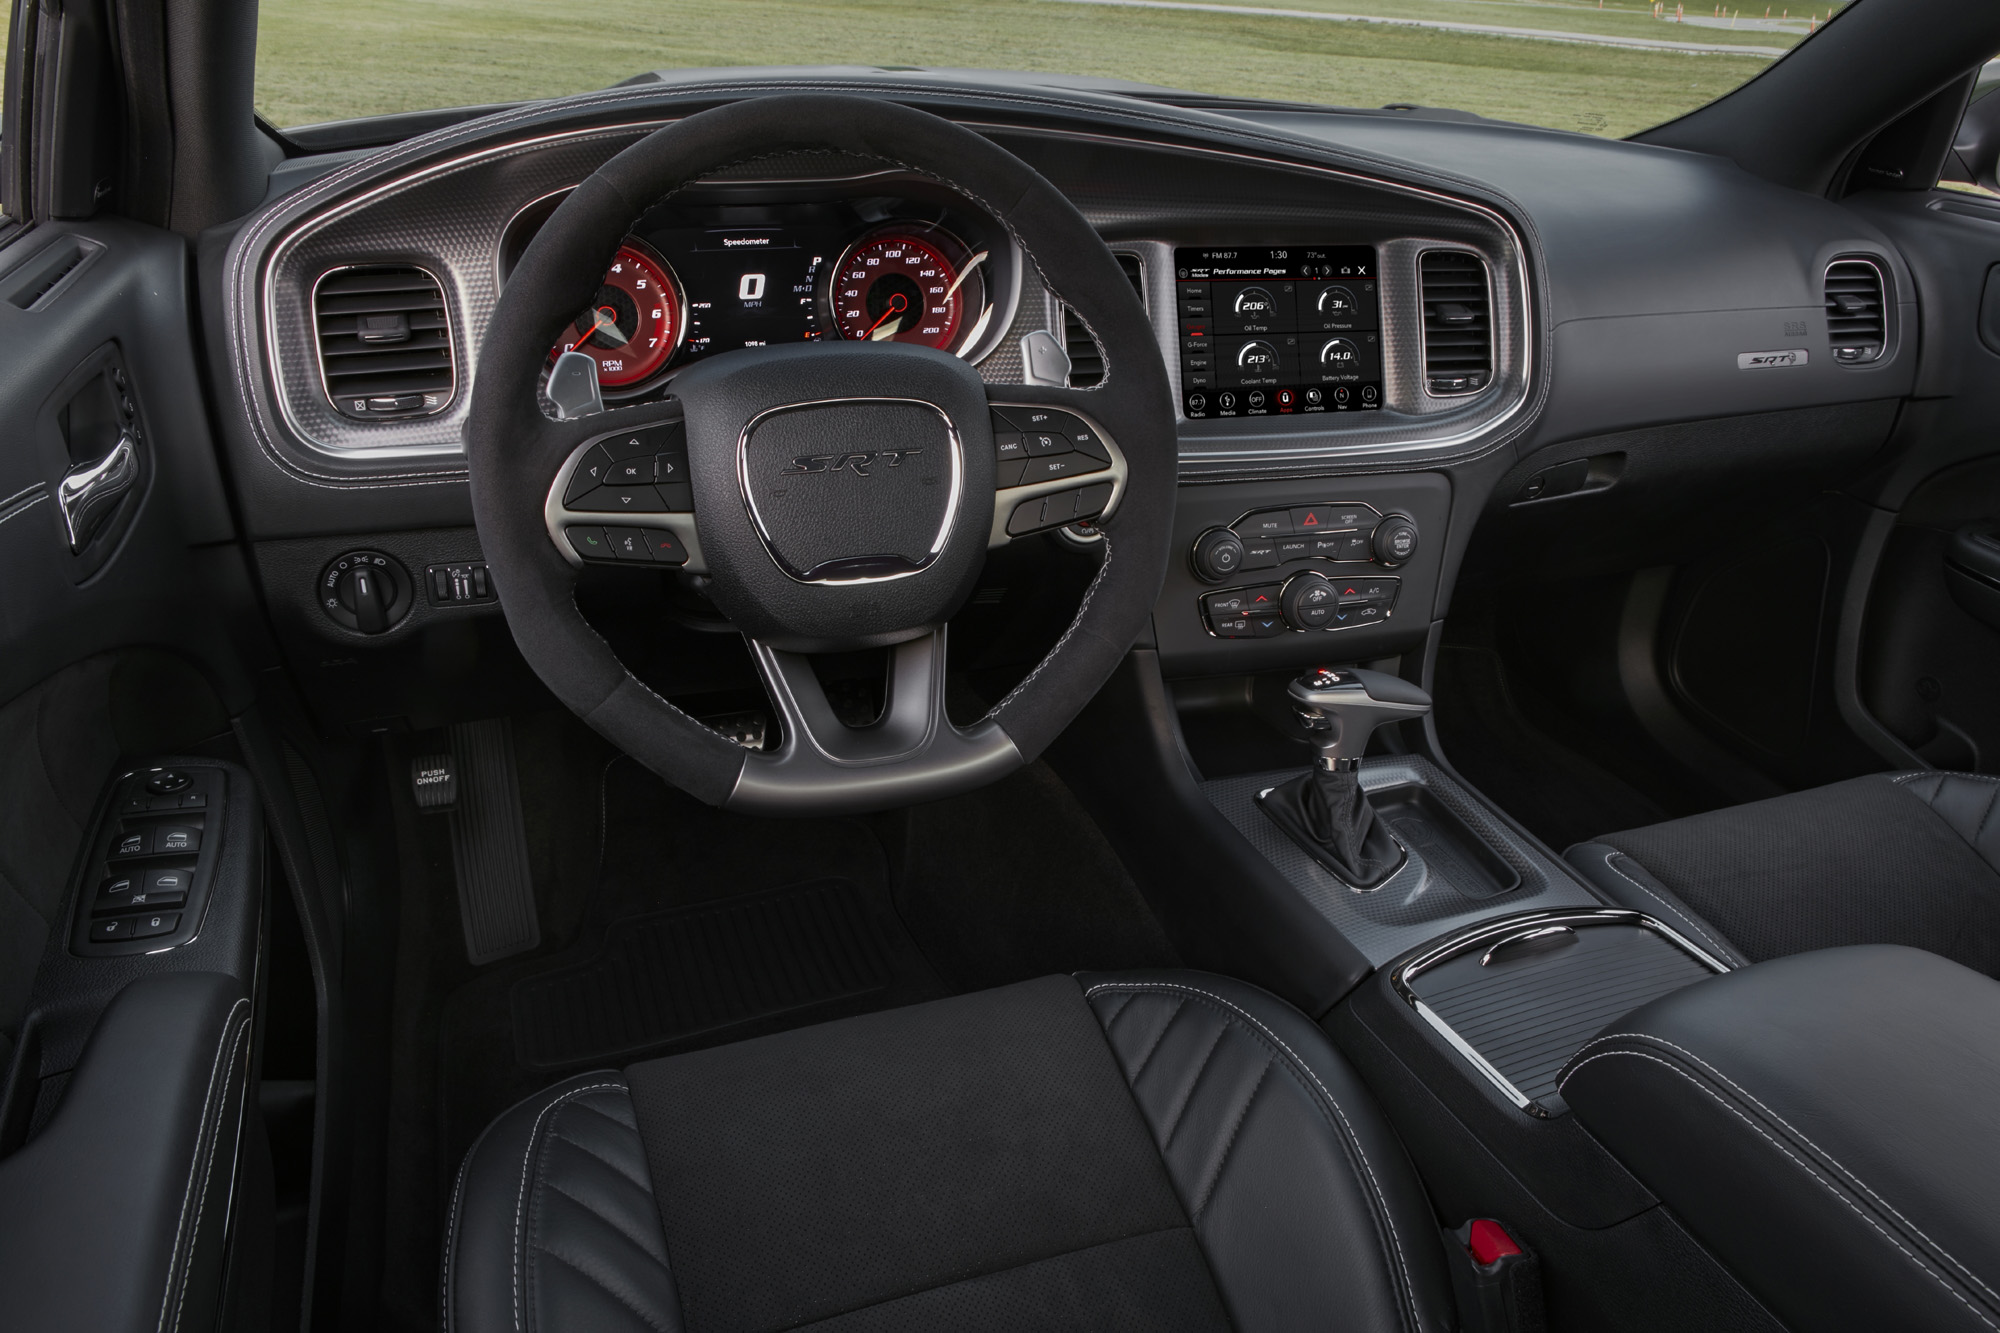 2020 Dodge Charger SRT Hellcat with premium stitched dash and do